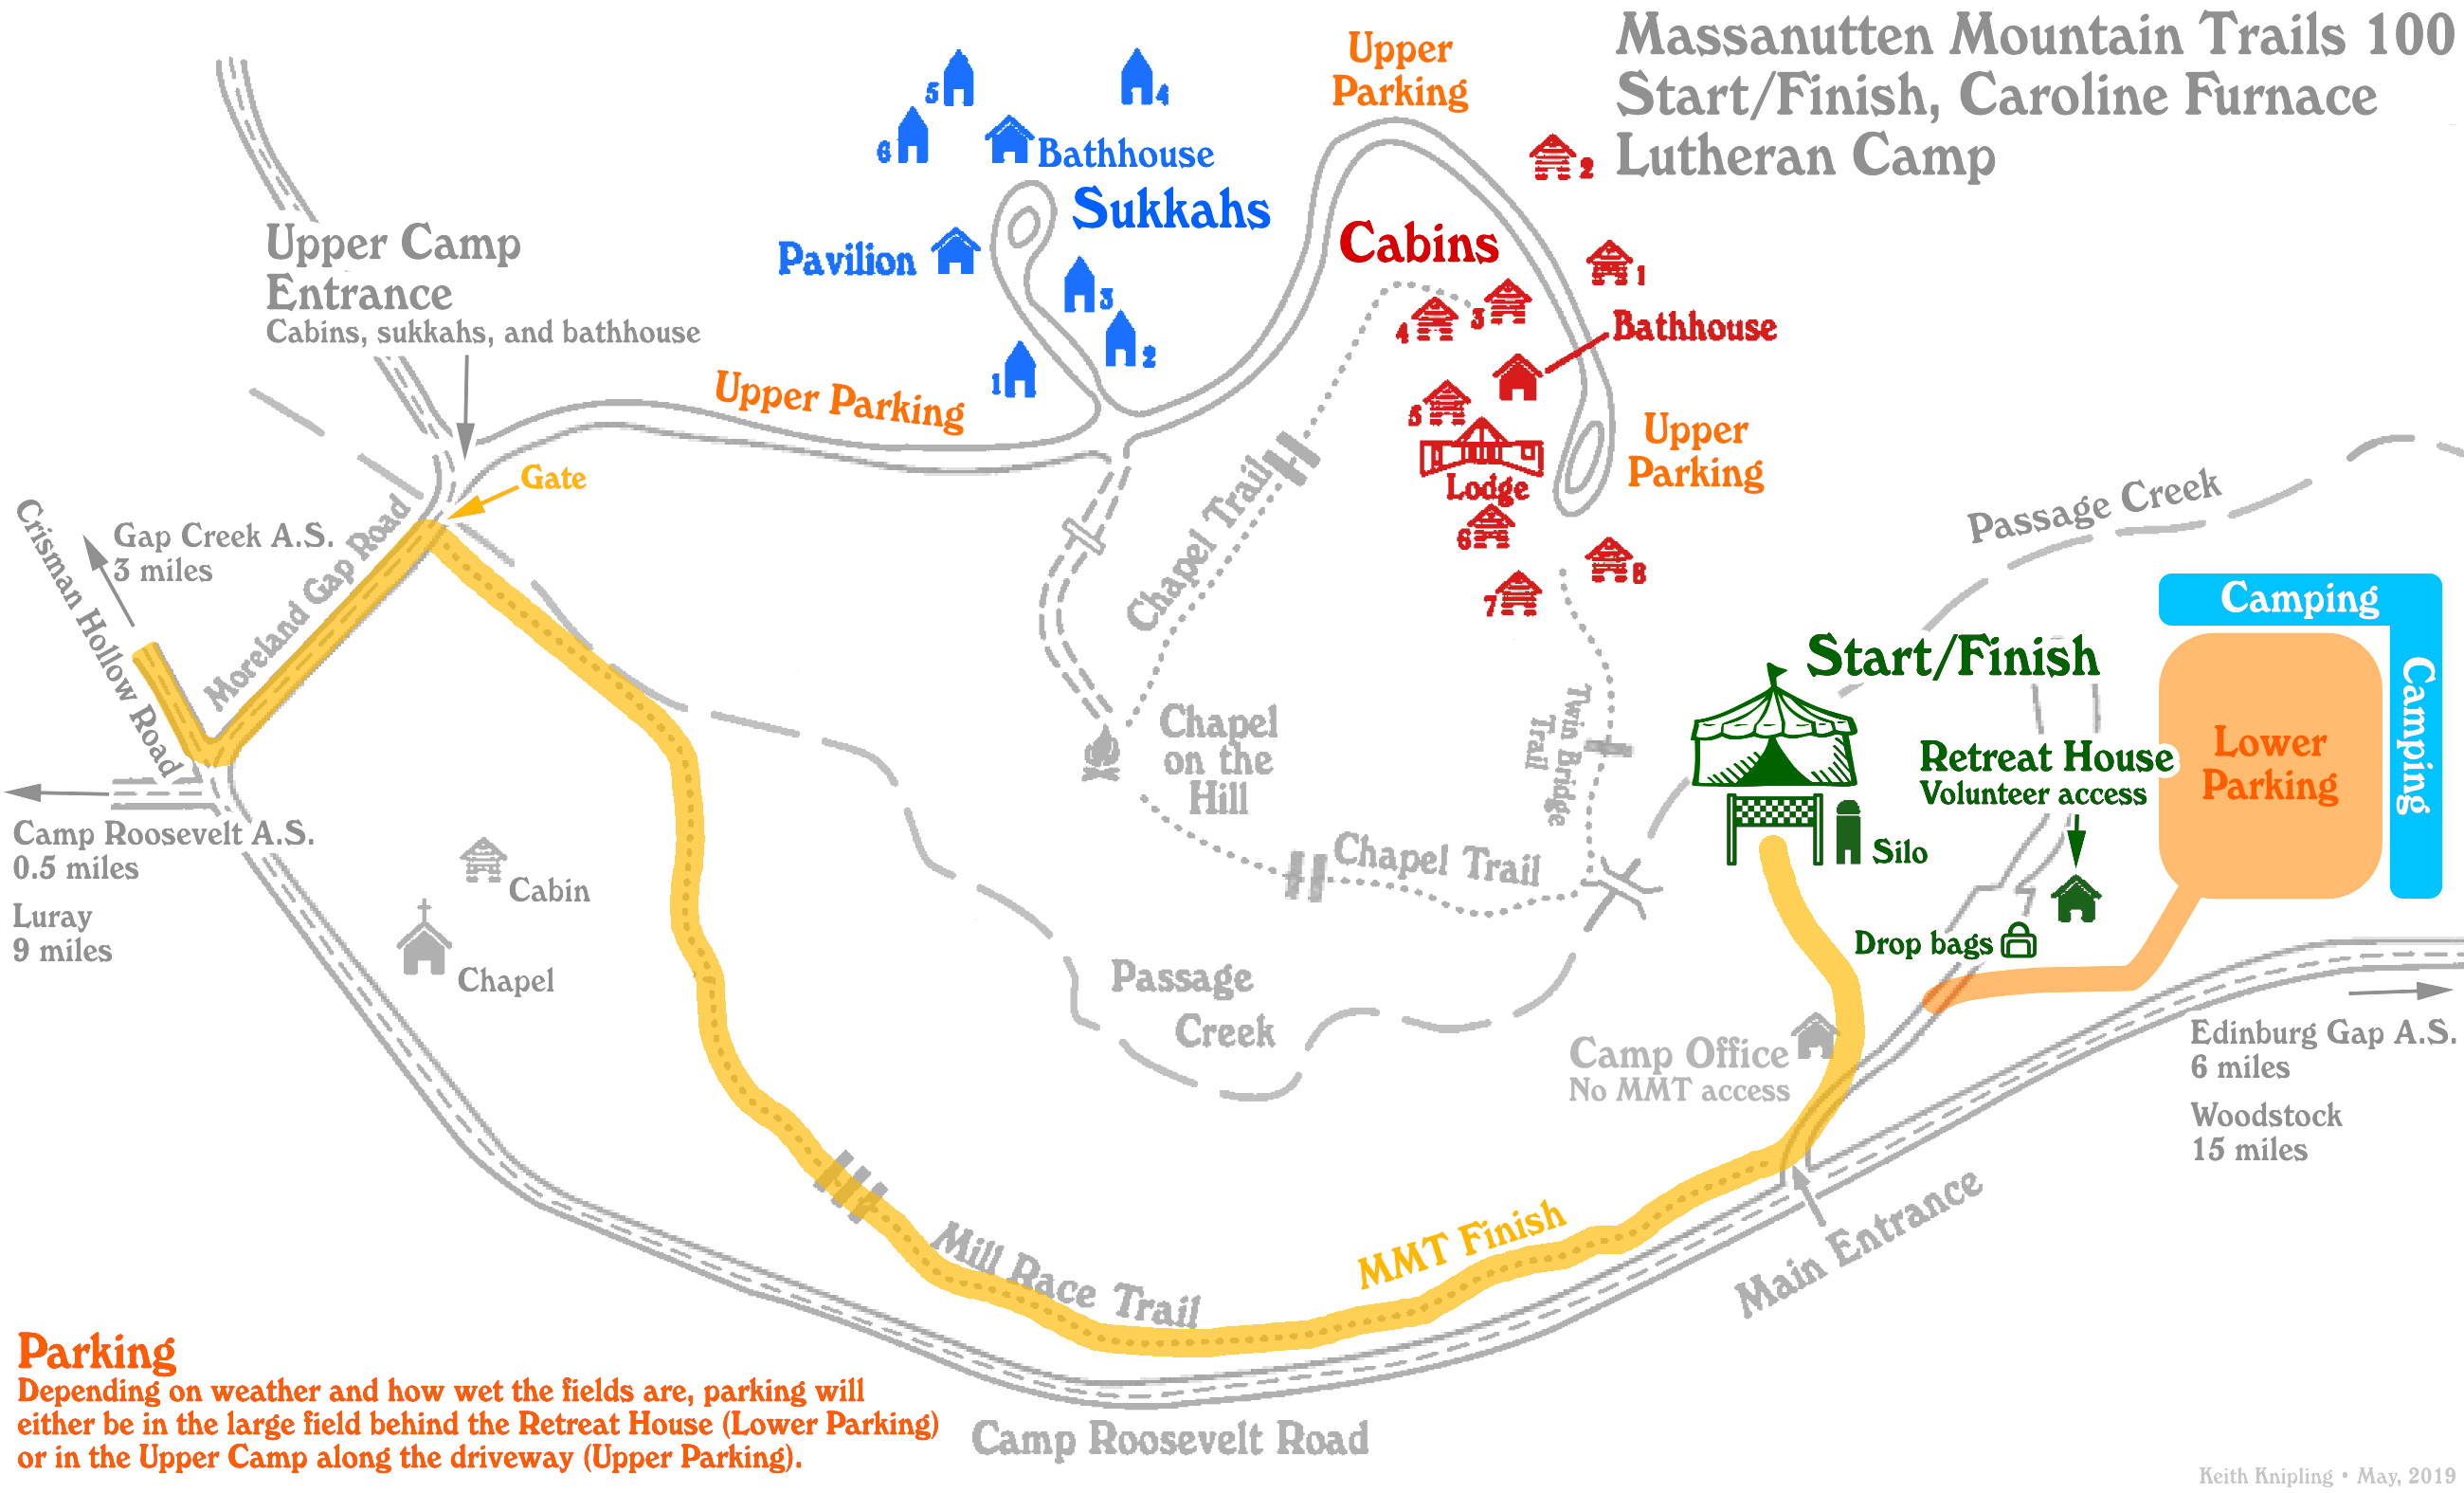 Route of the finish (in yellow) through the Caroline Furnace Lutheran Camp